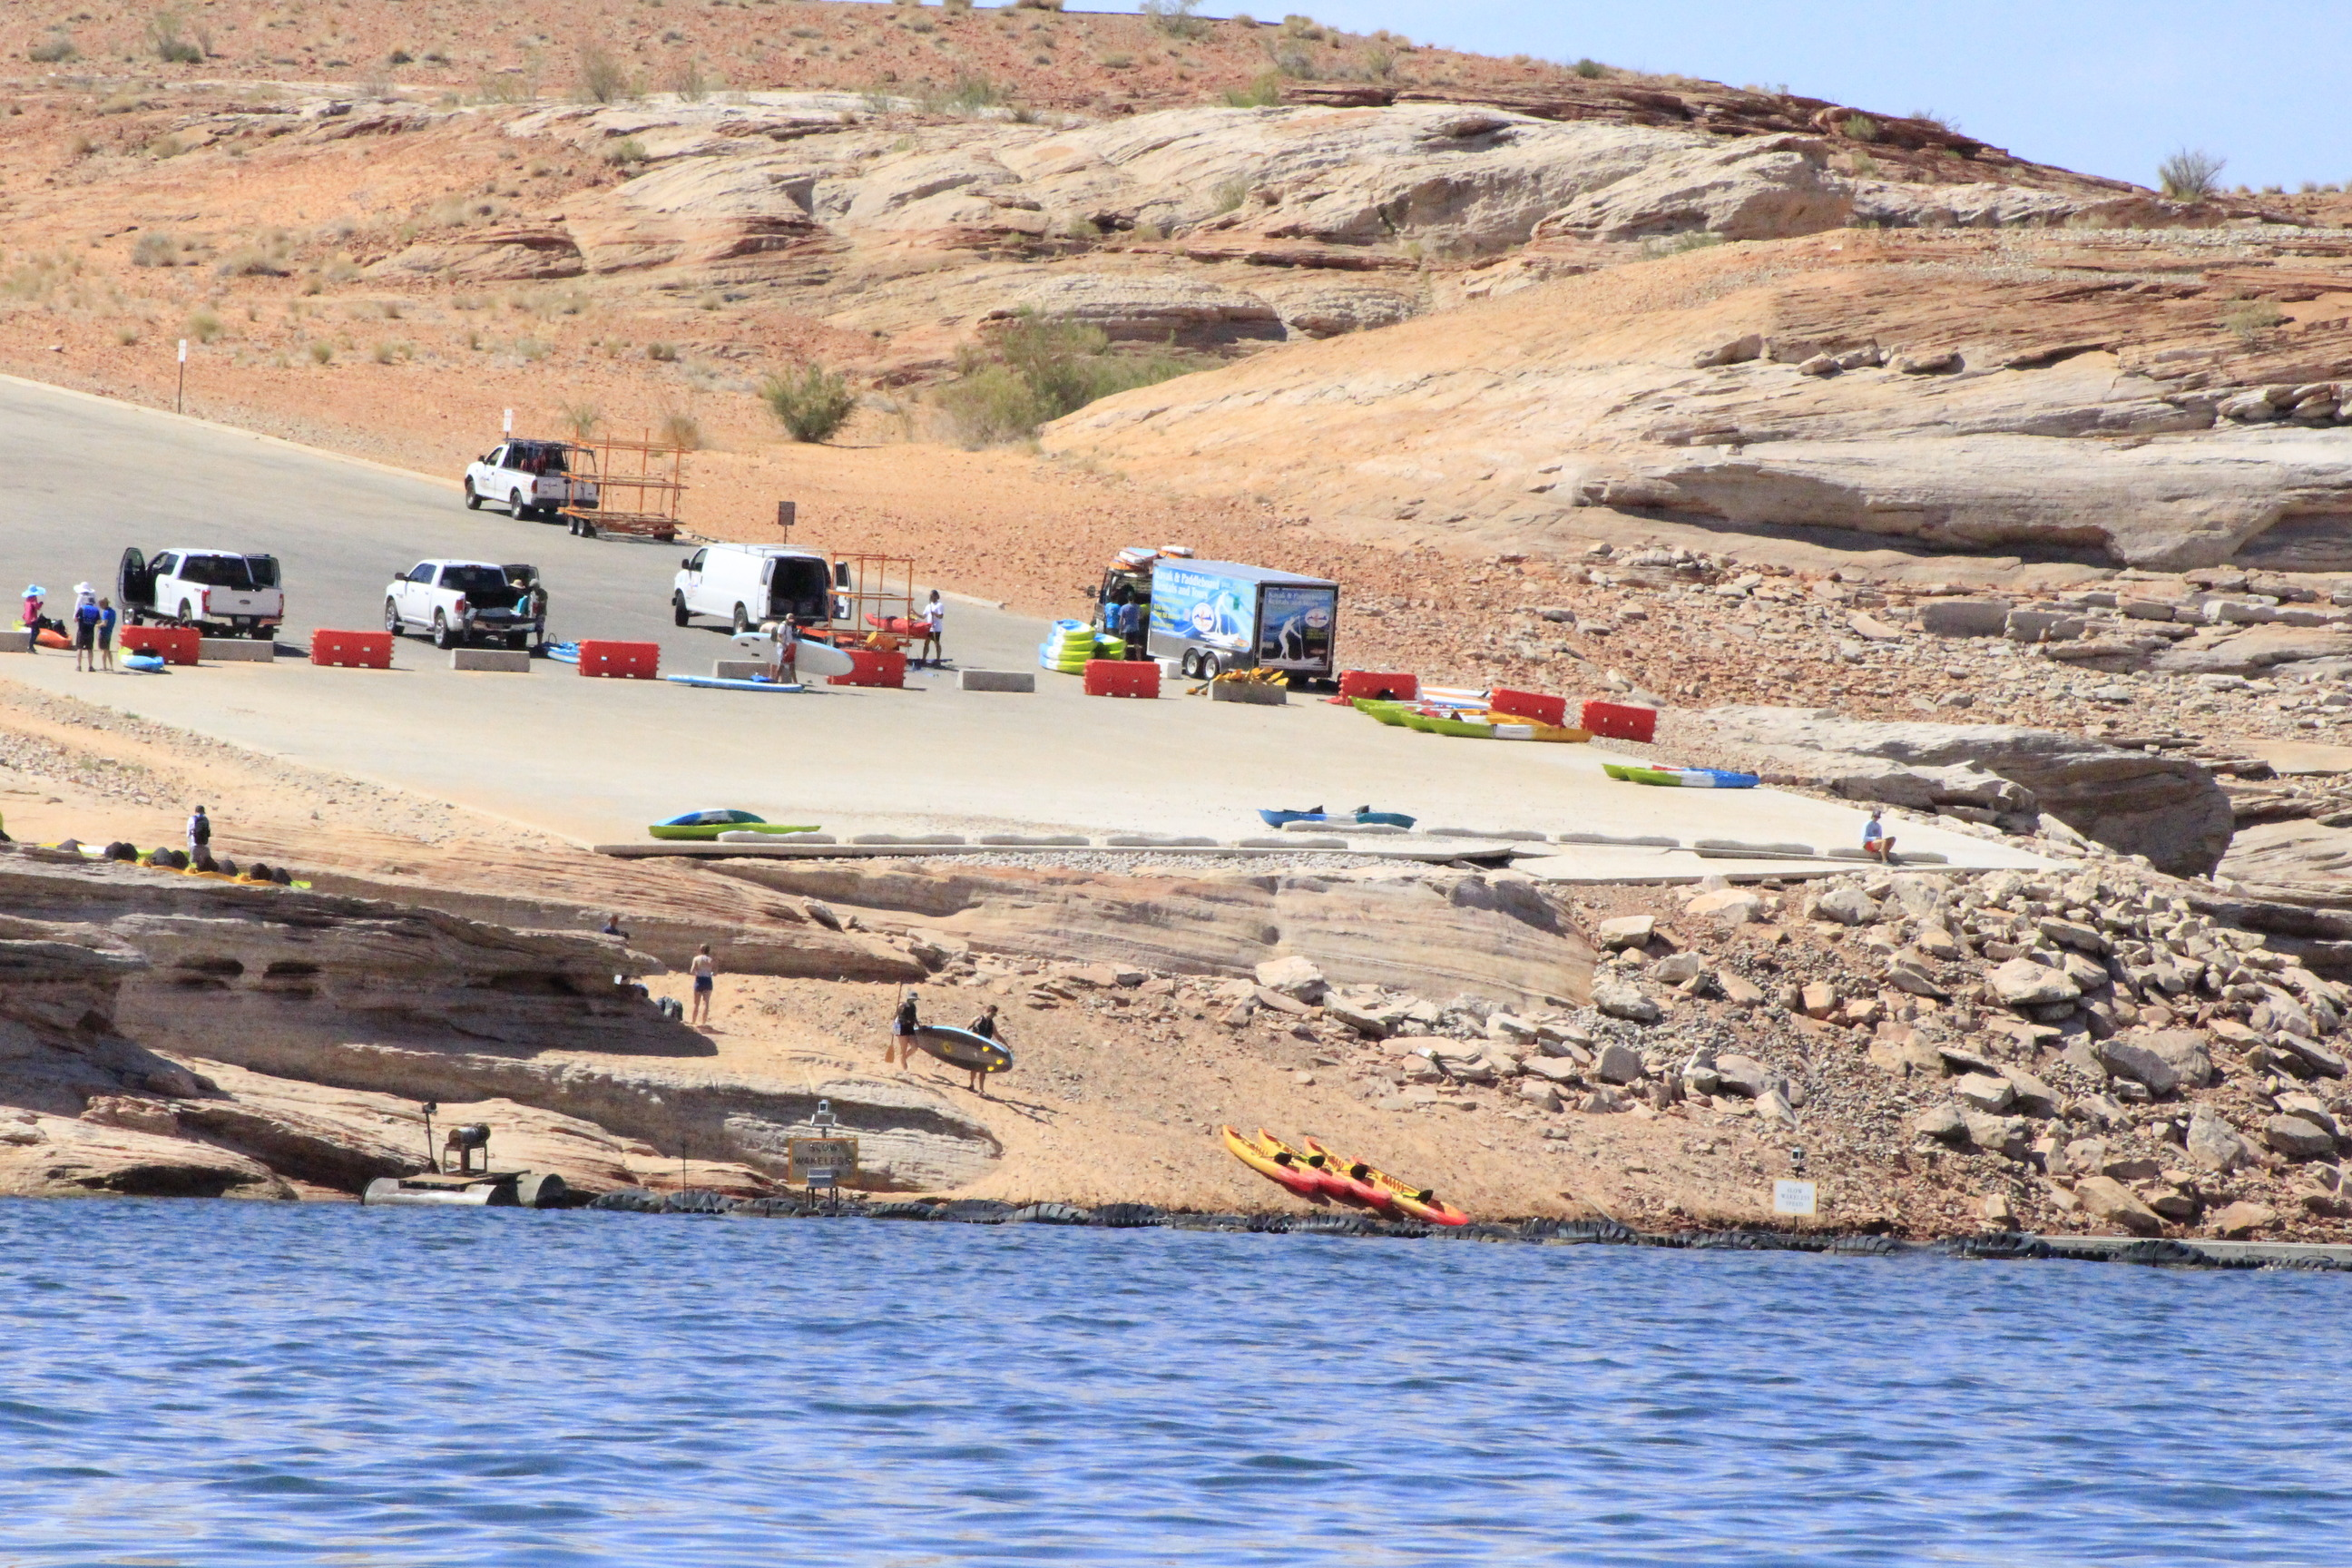 Trucks unloading kayaks on a barricaded launch ramp as visitors descend a rocky shoreline.